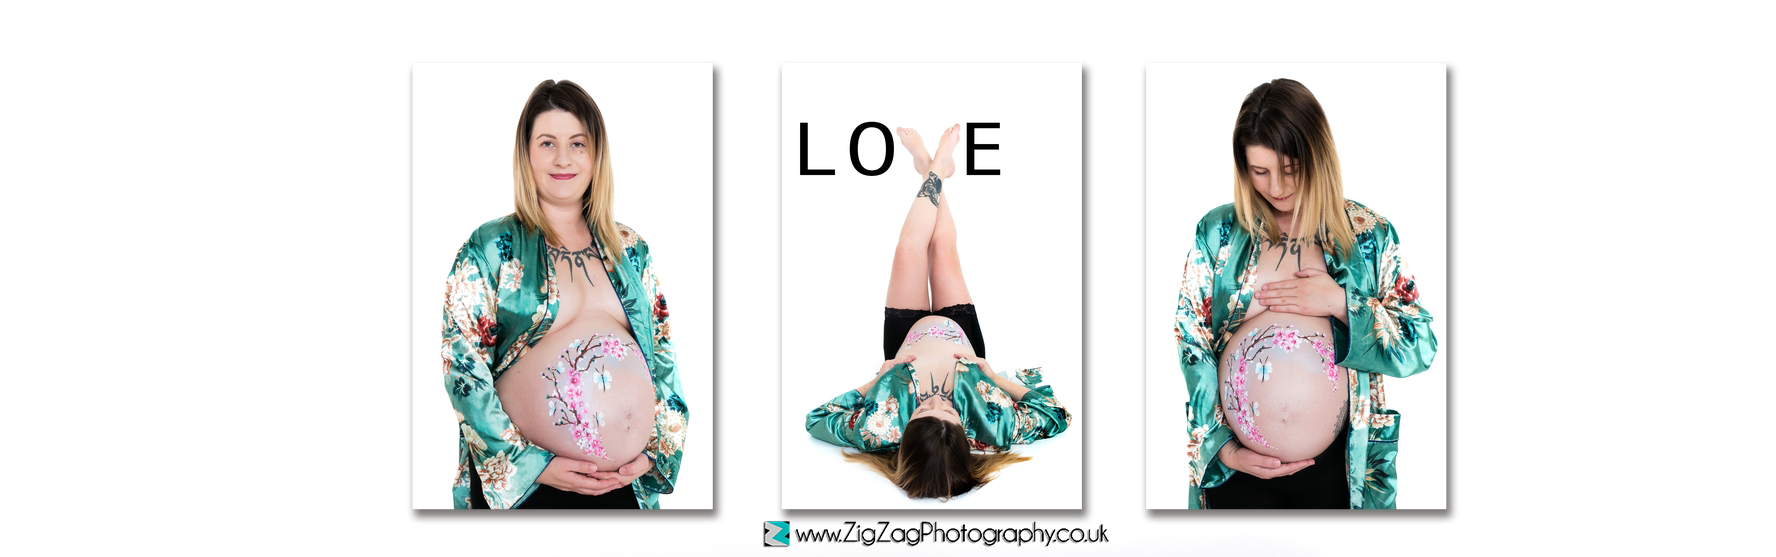 bump-photography-leicester-photographer-zigzag-studio-photo-pregnancy-painting